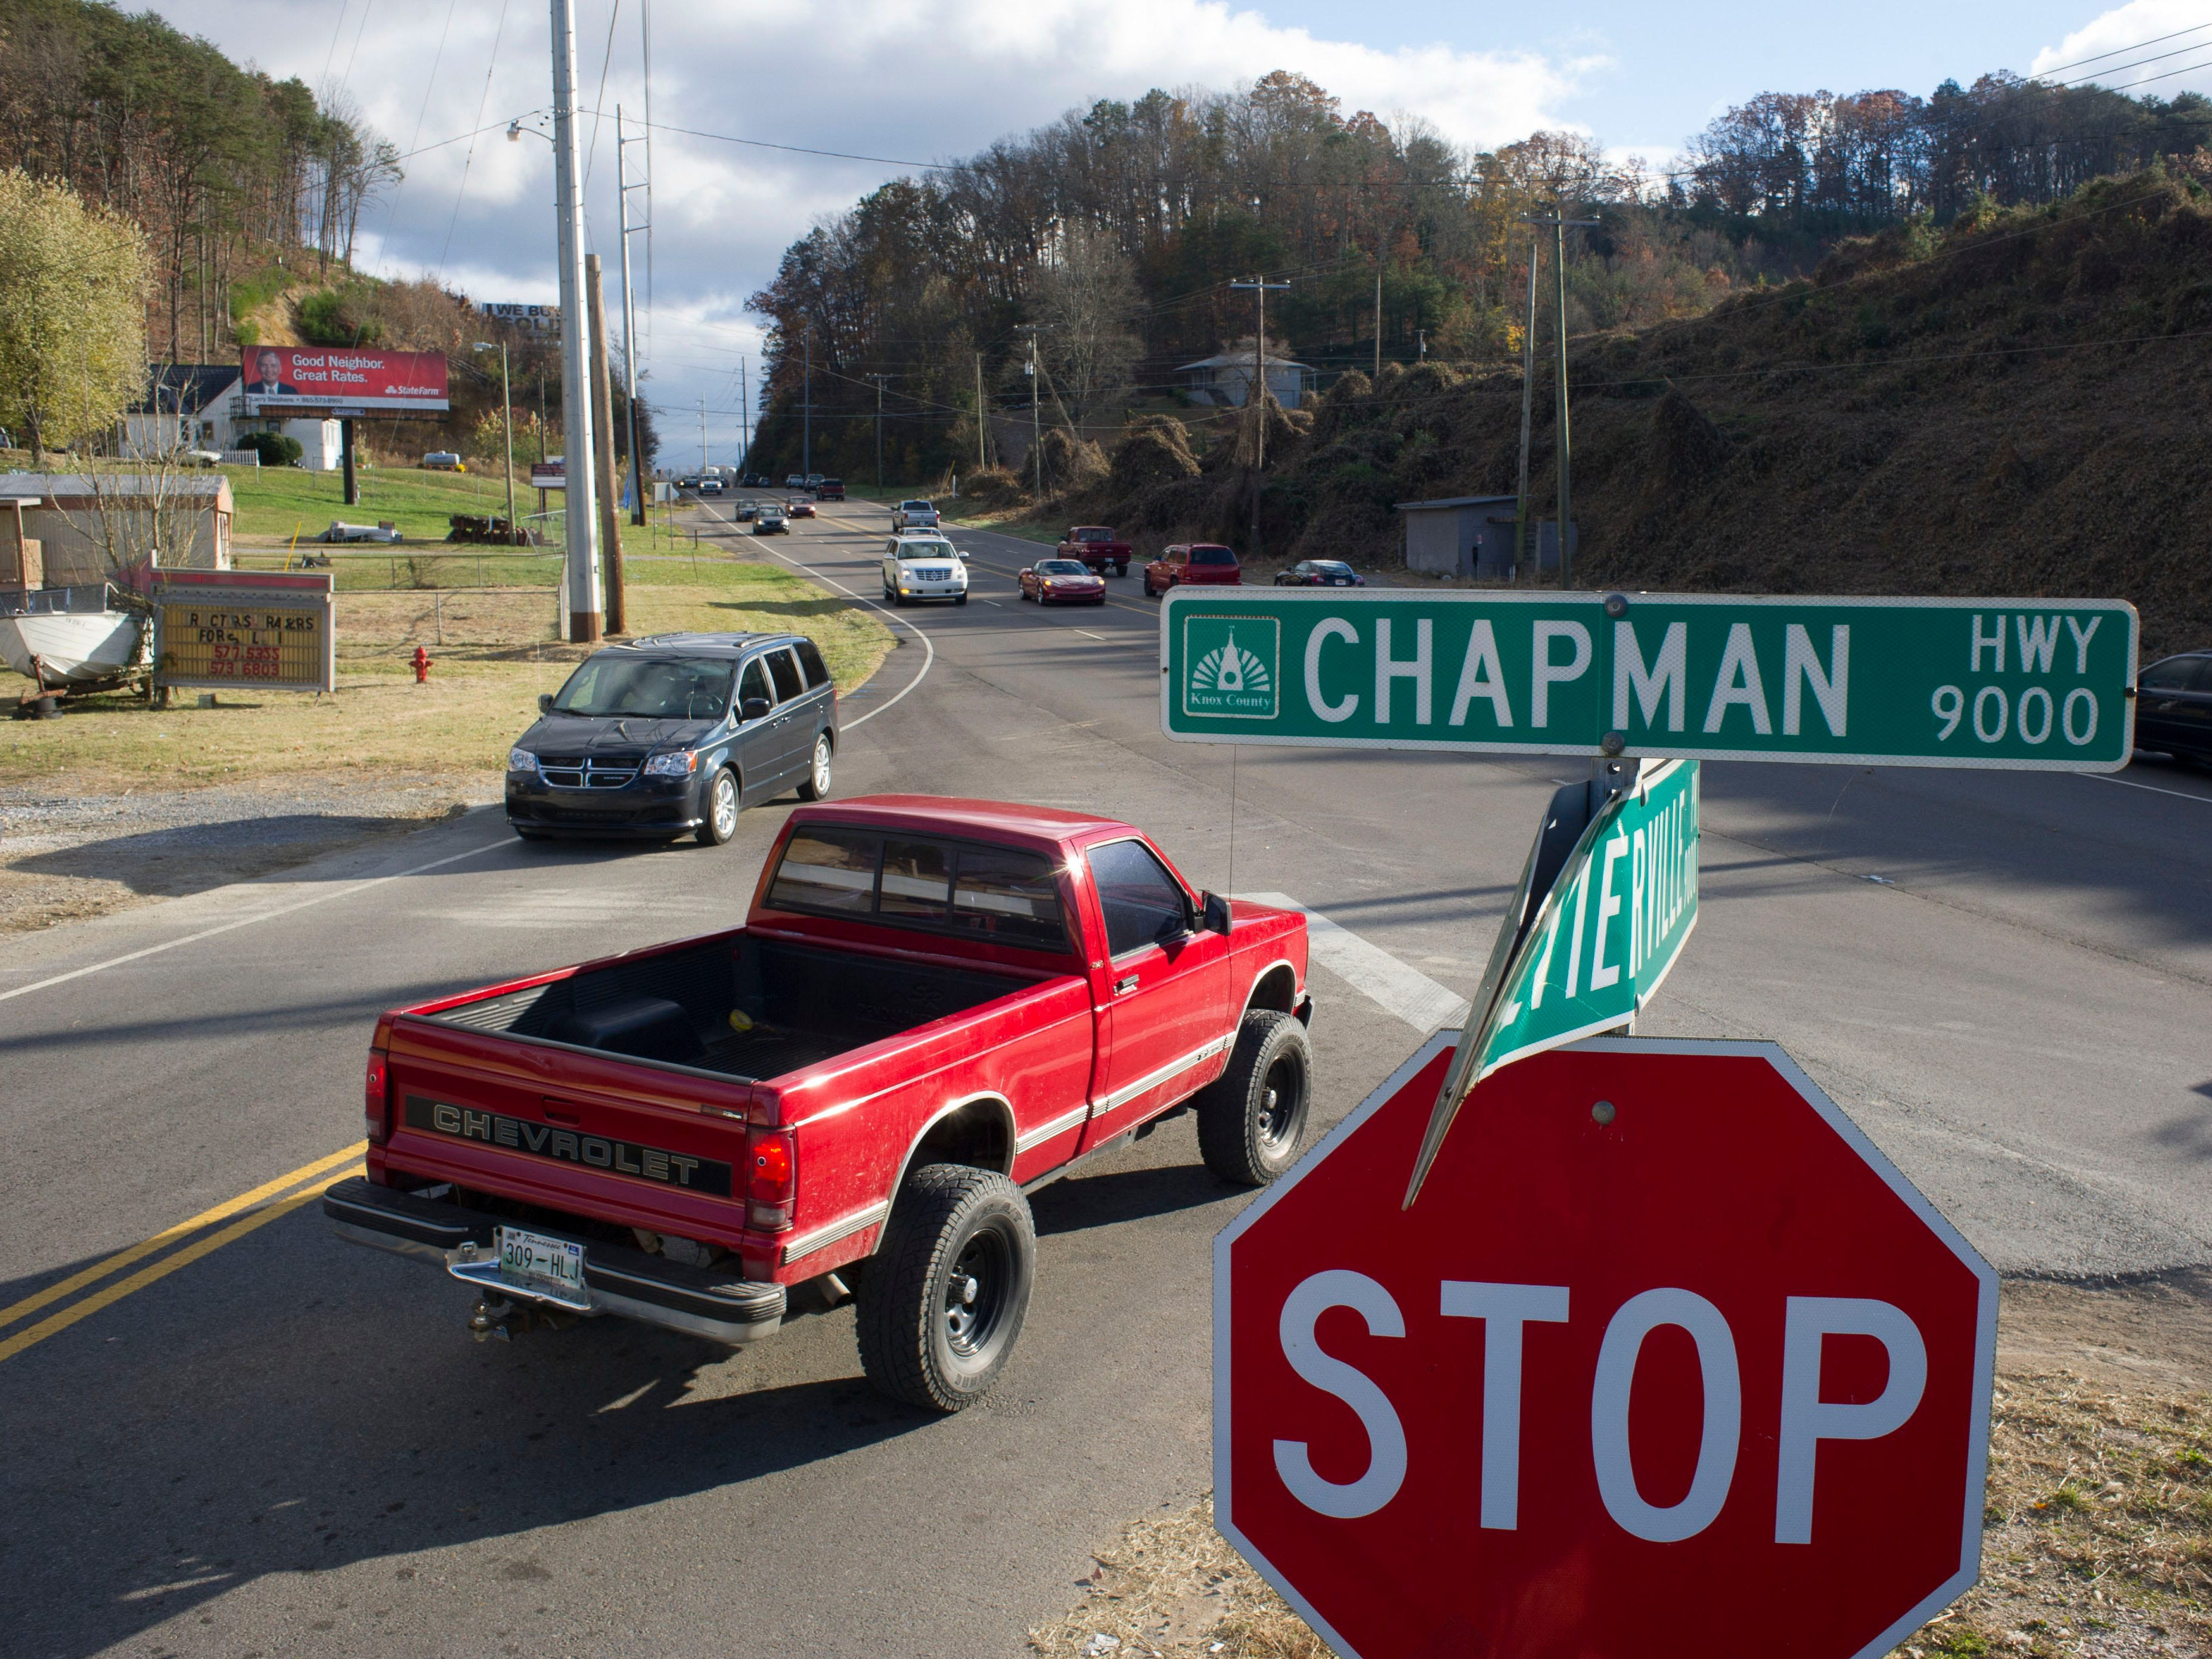 The intersection at Chapman Highway and Sevierville Pike, pictured on Monday, Nov. 12, 2013, in Seymour, is slated for improvements according to TDOT officials. Plans call for a cul-de-sac for Sevierville Pike, eliminating the unsafe angle at which it meets Chapman Highway. It could be let for bids in 2015 and no buildings will be taken for the project. (Paul Efird/News Sentinel)